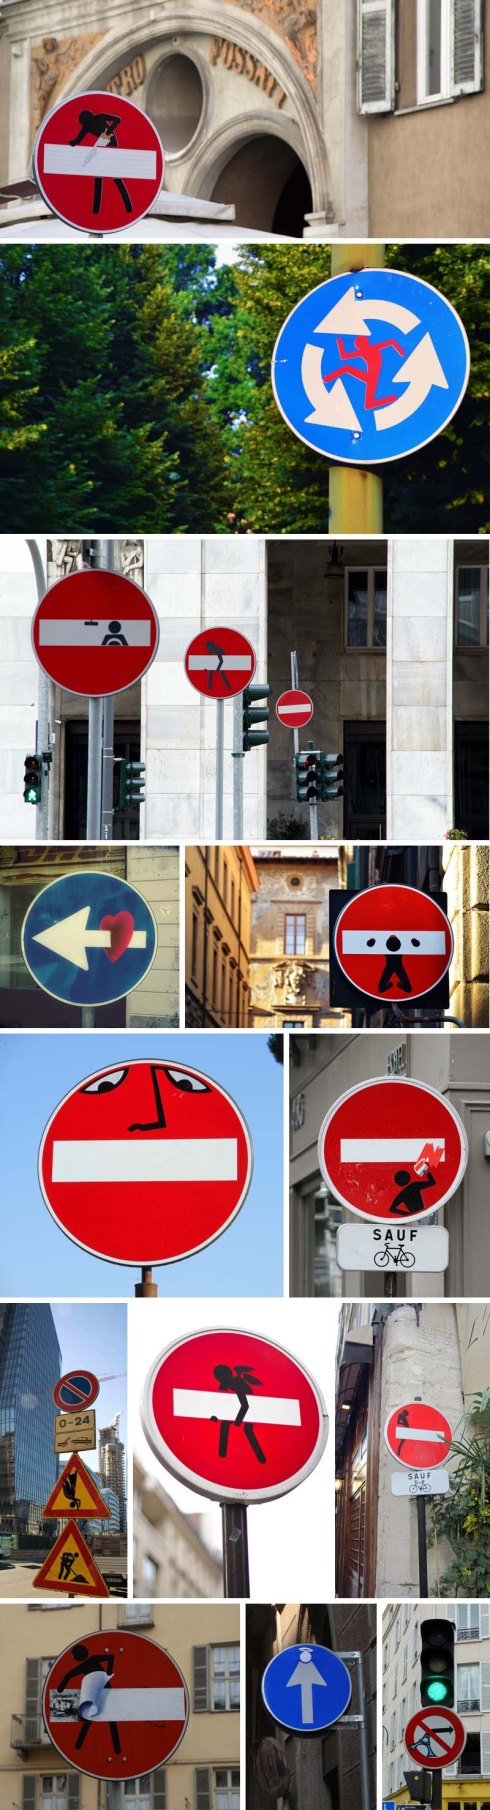 European Street Art, pictorial stickers on street signs, graffiti, humor, Clet Abraham, contemporary art, fun